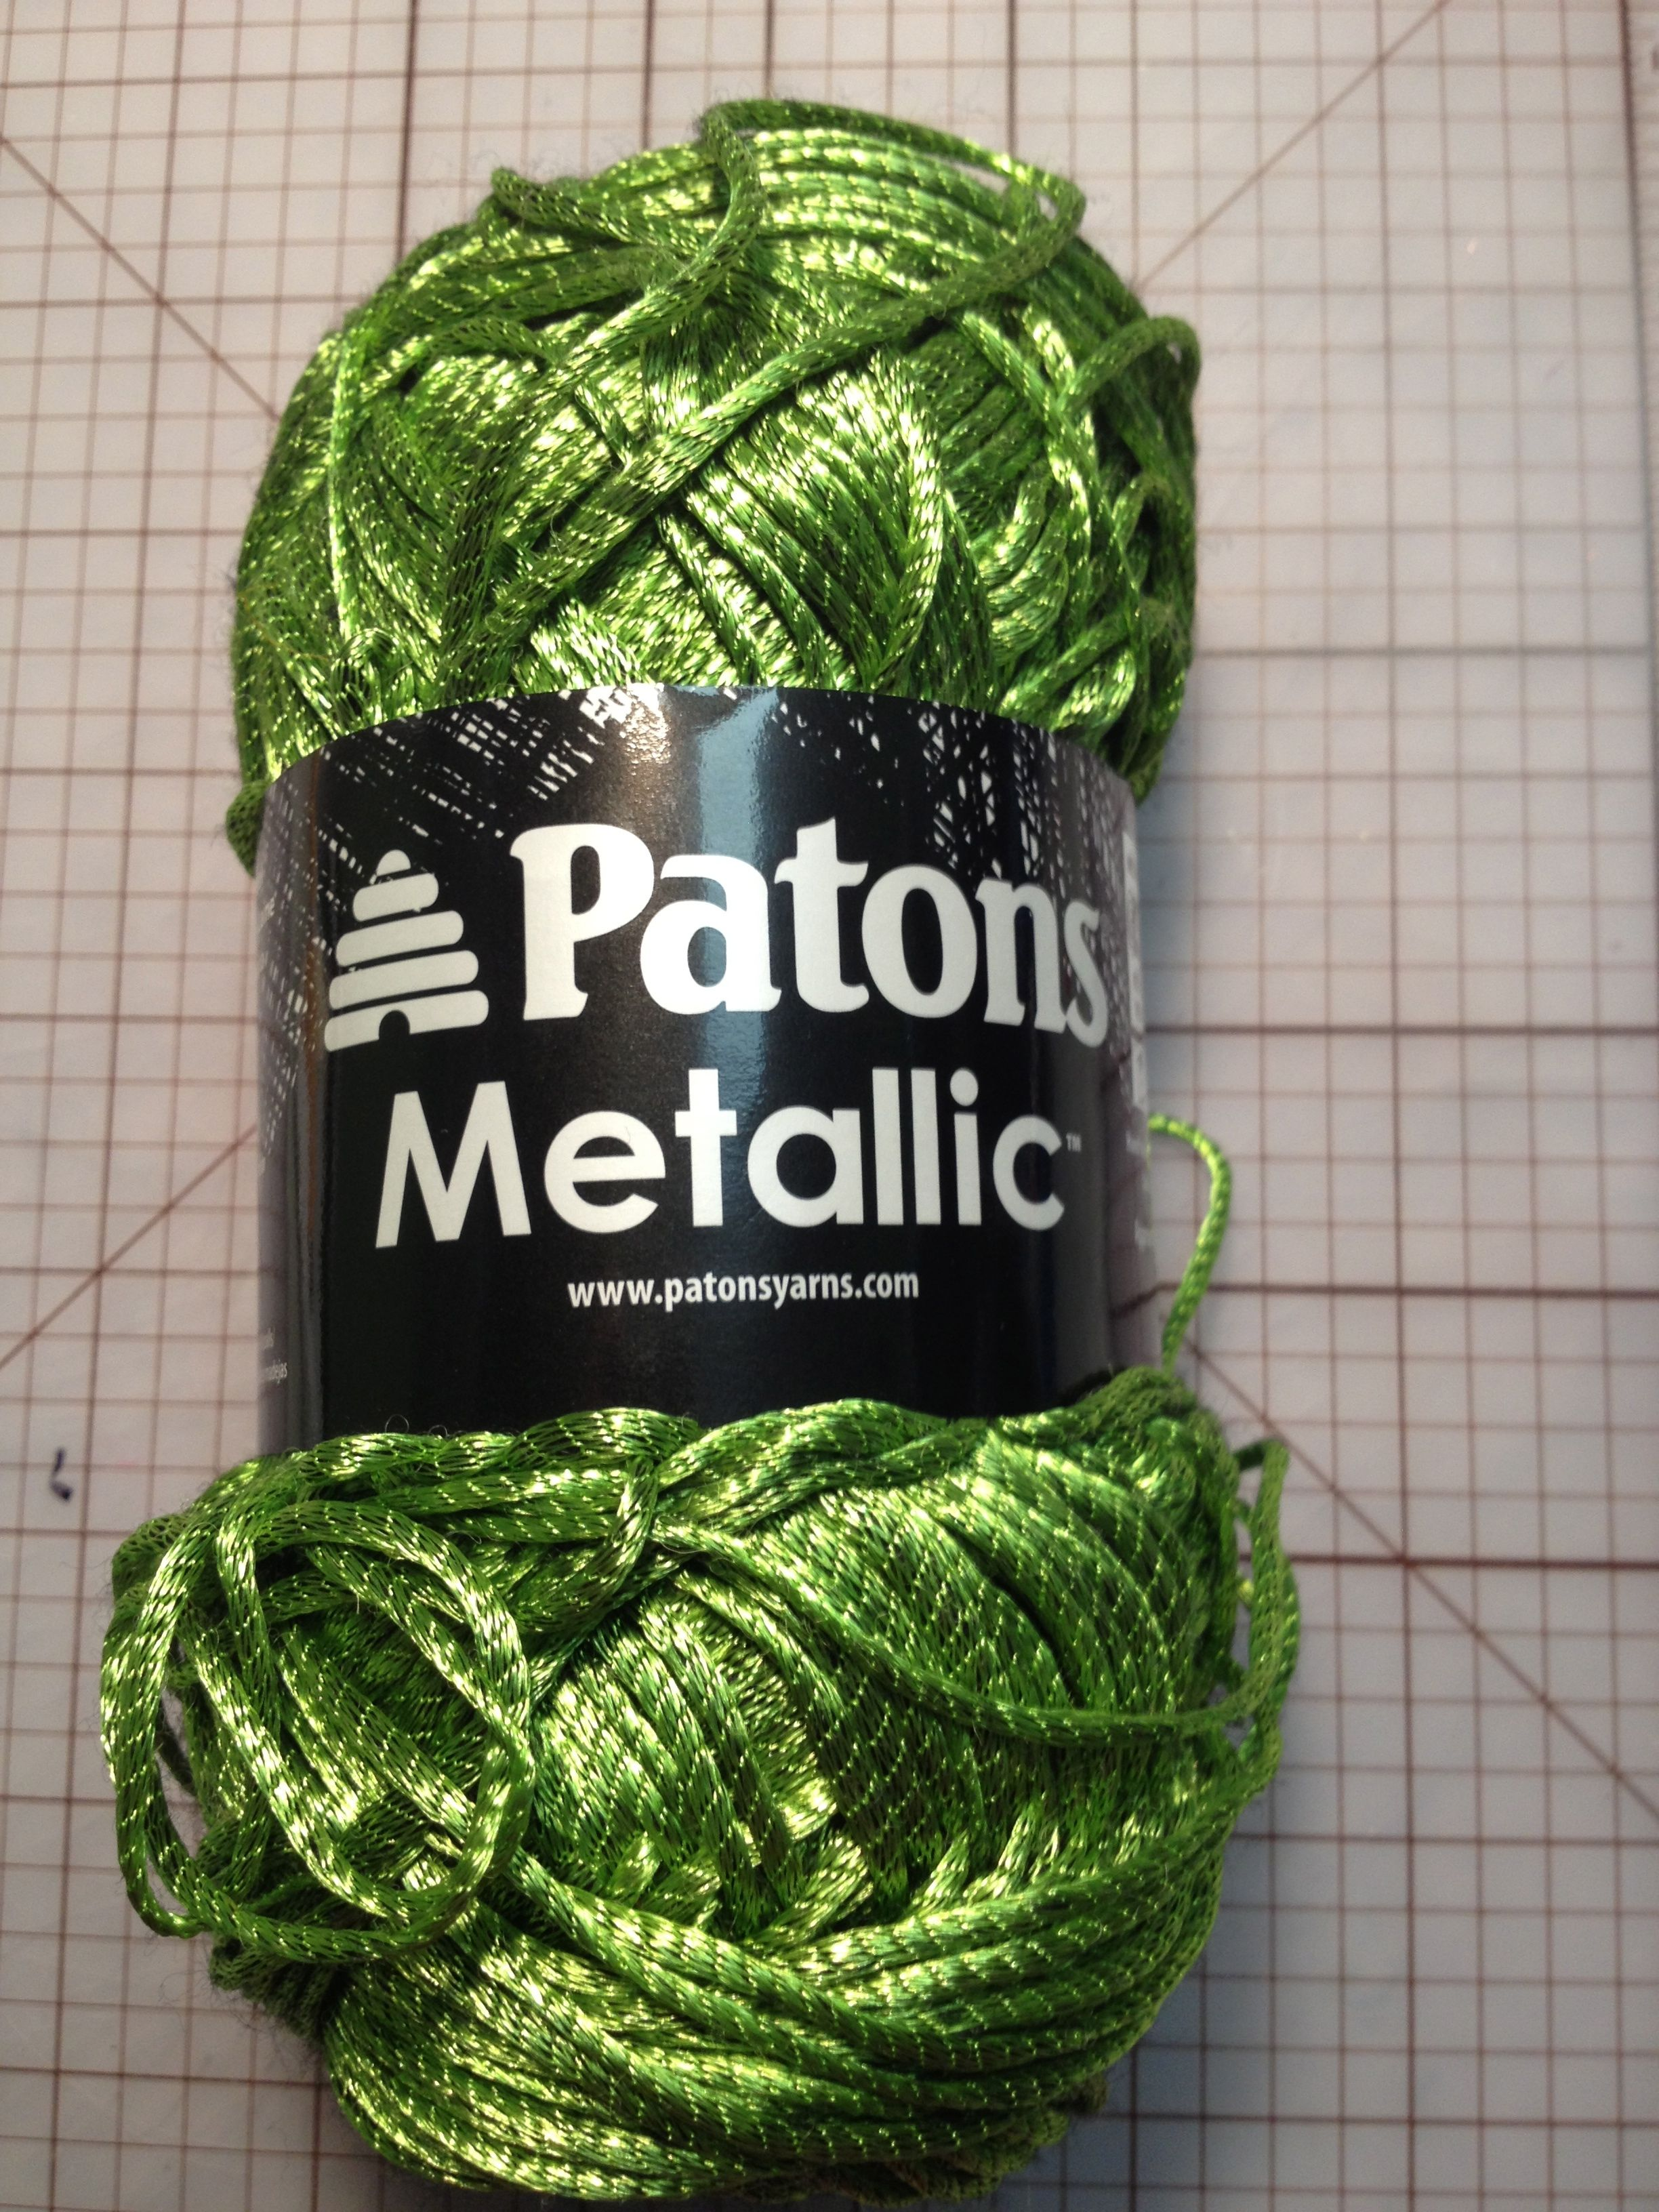 Brand new metallic yarn by Patons that I picked up. This ...